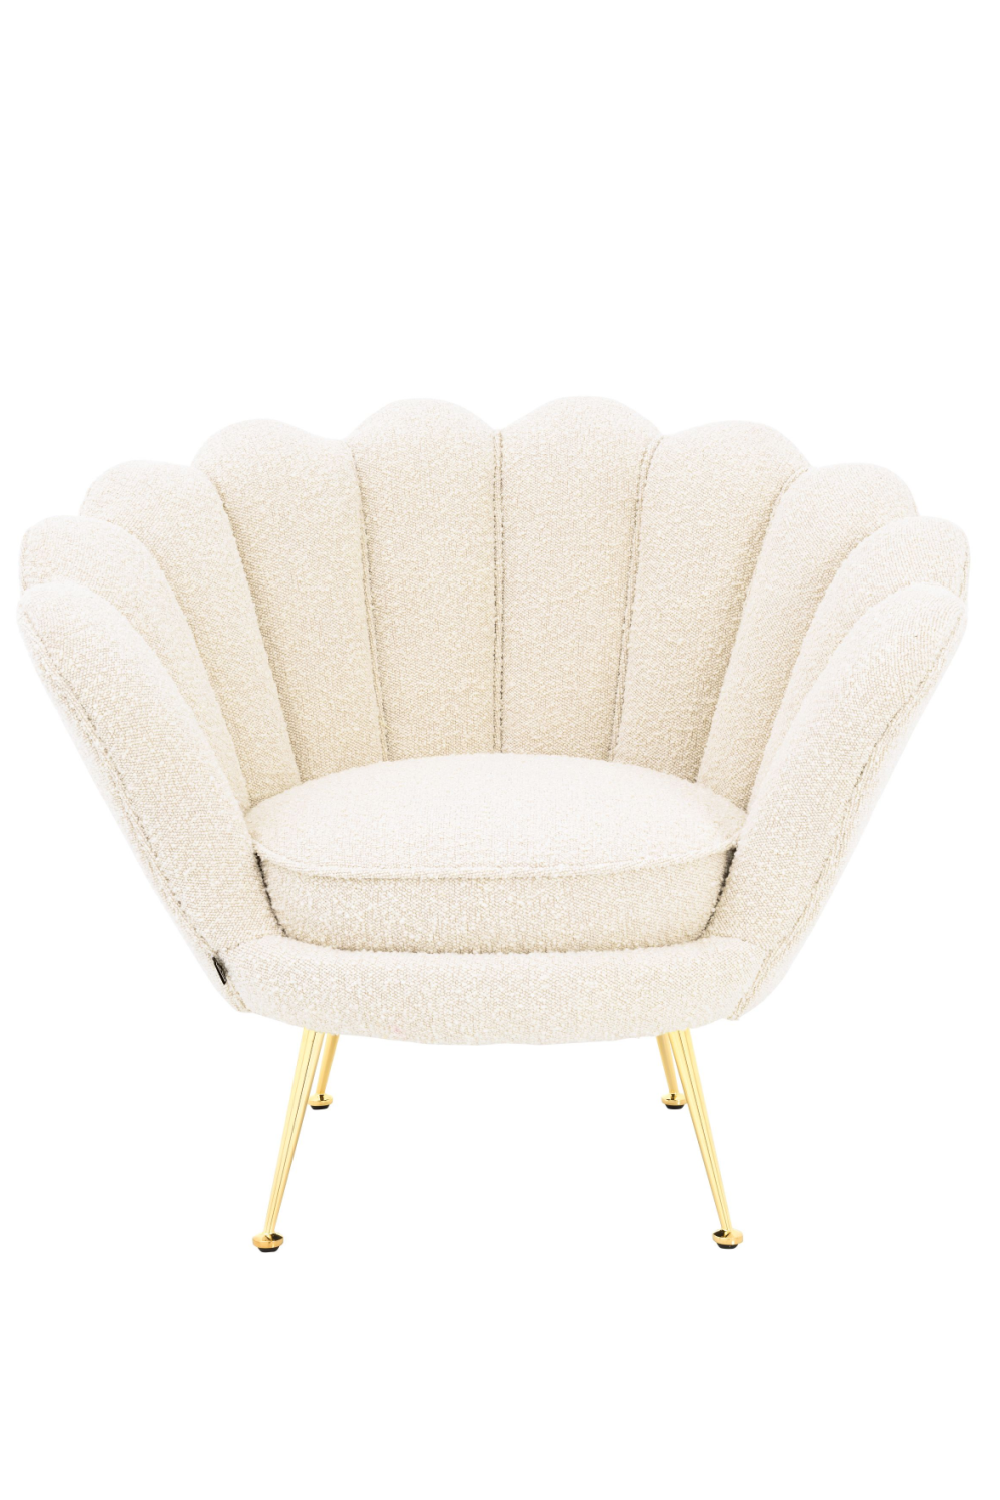 Bouclé Scalloped Accent Chair | Eichholtz Trapezium | OROA Luxury Seat